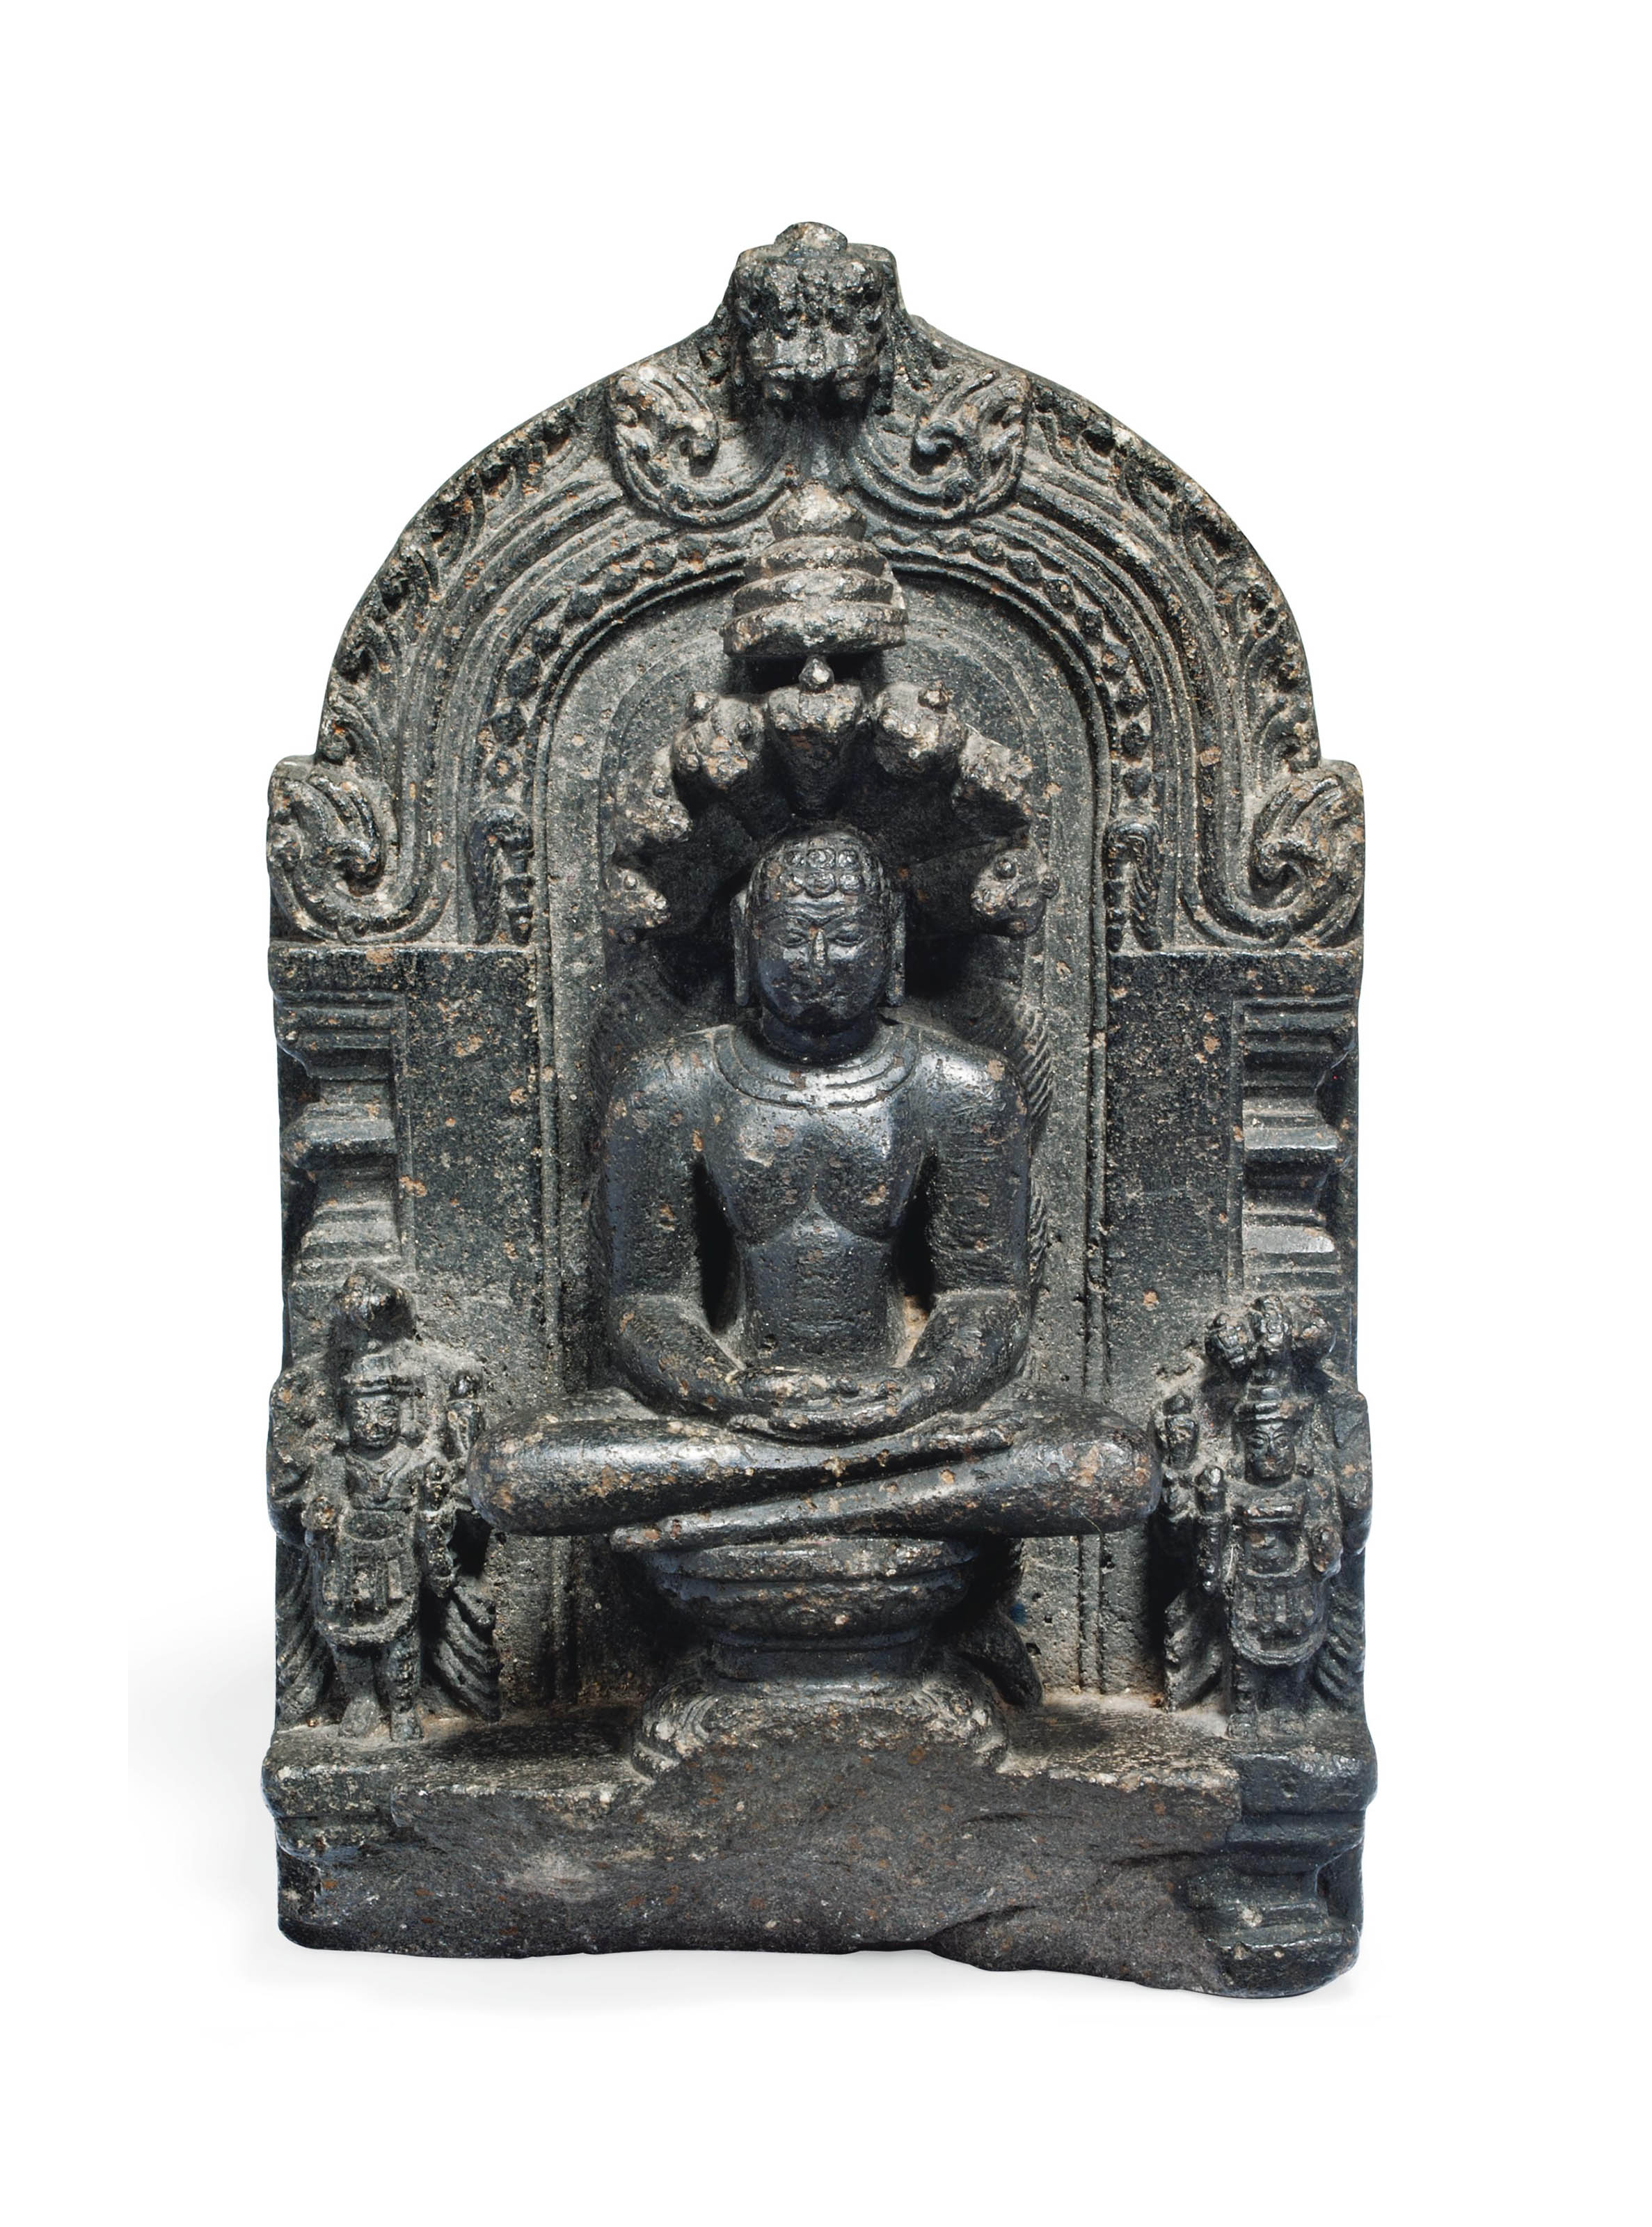 A CARVED STONE RELIEF OF A SEATED JINA